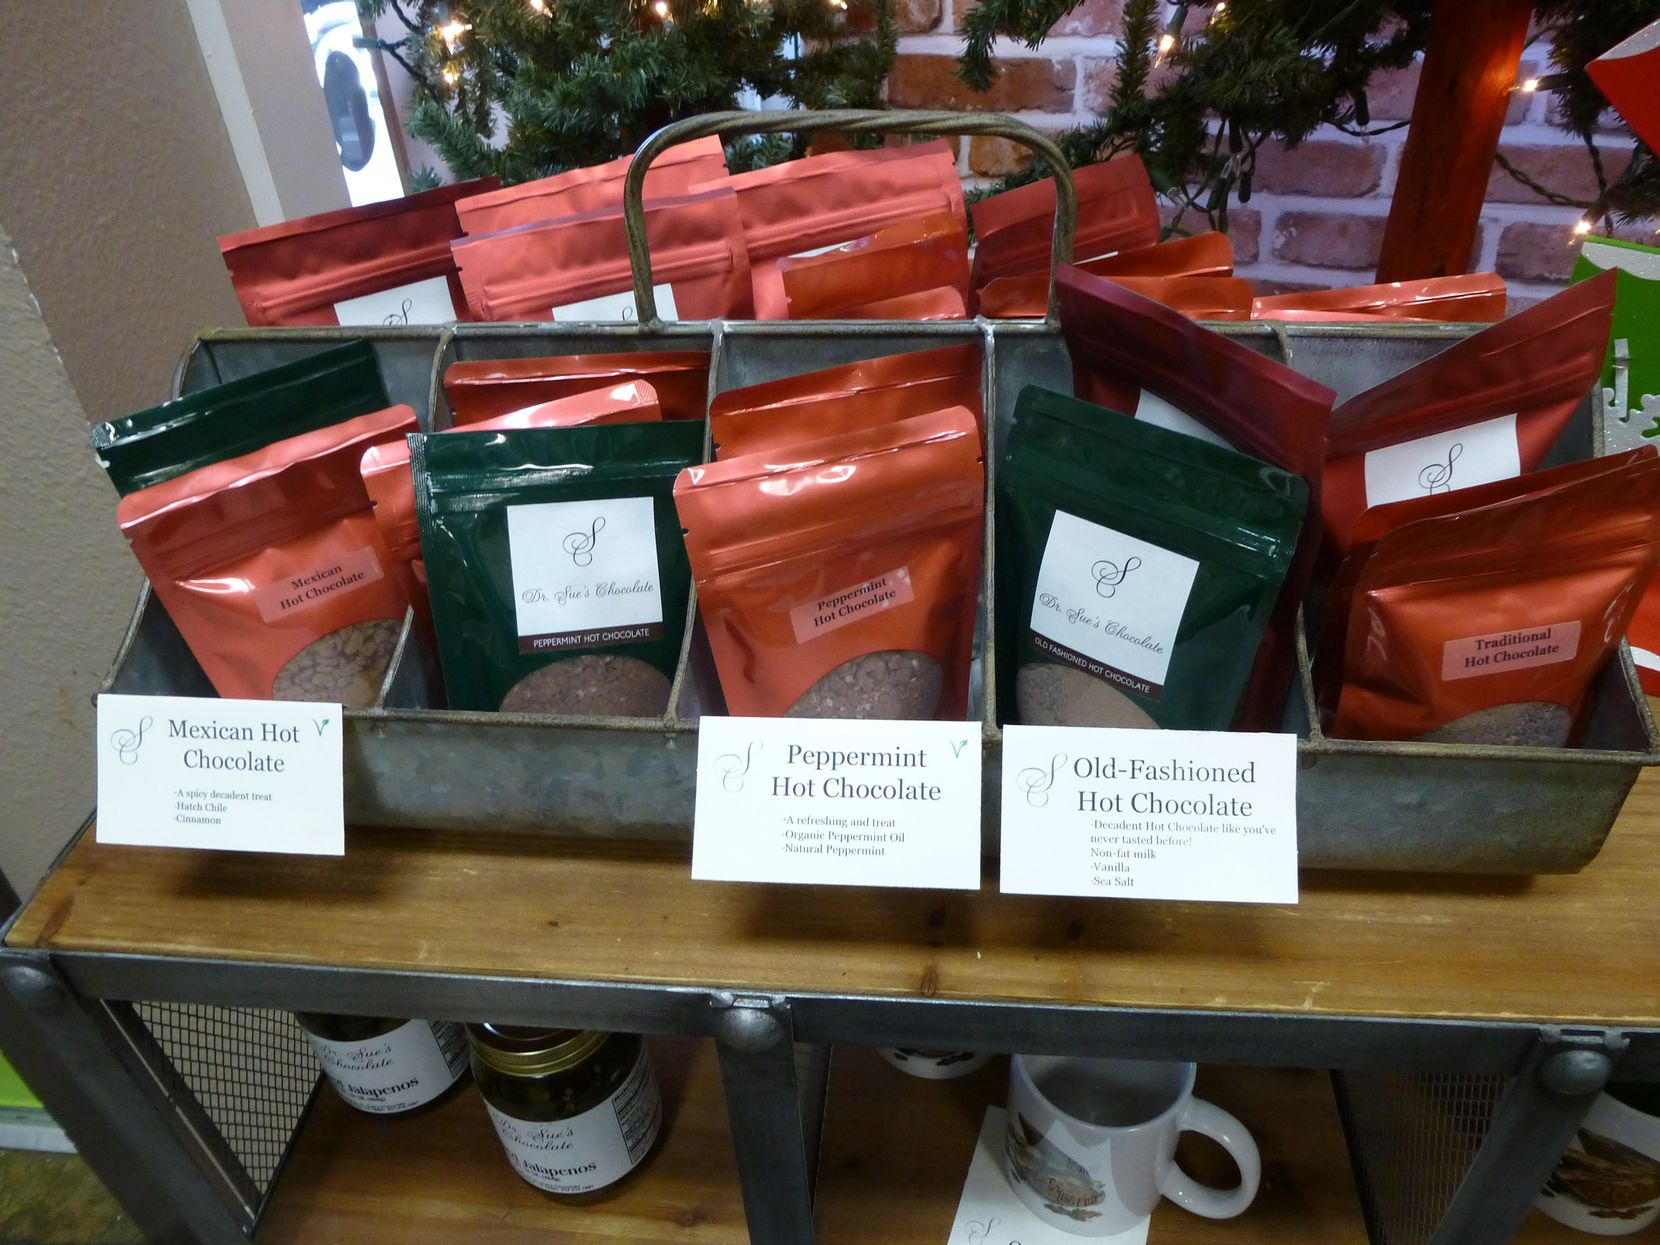 Down the street from Grapevine Farmers Market, find stocking stuffers like instant hot chocolate at Dr. Sue's Chocolate.